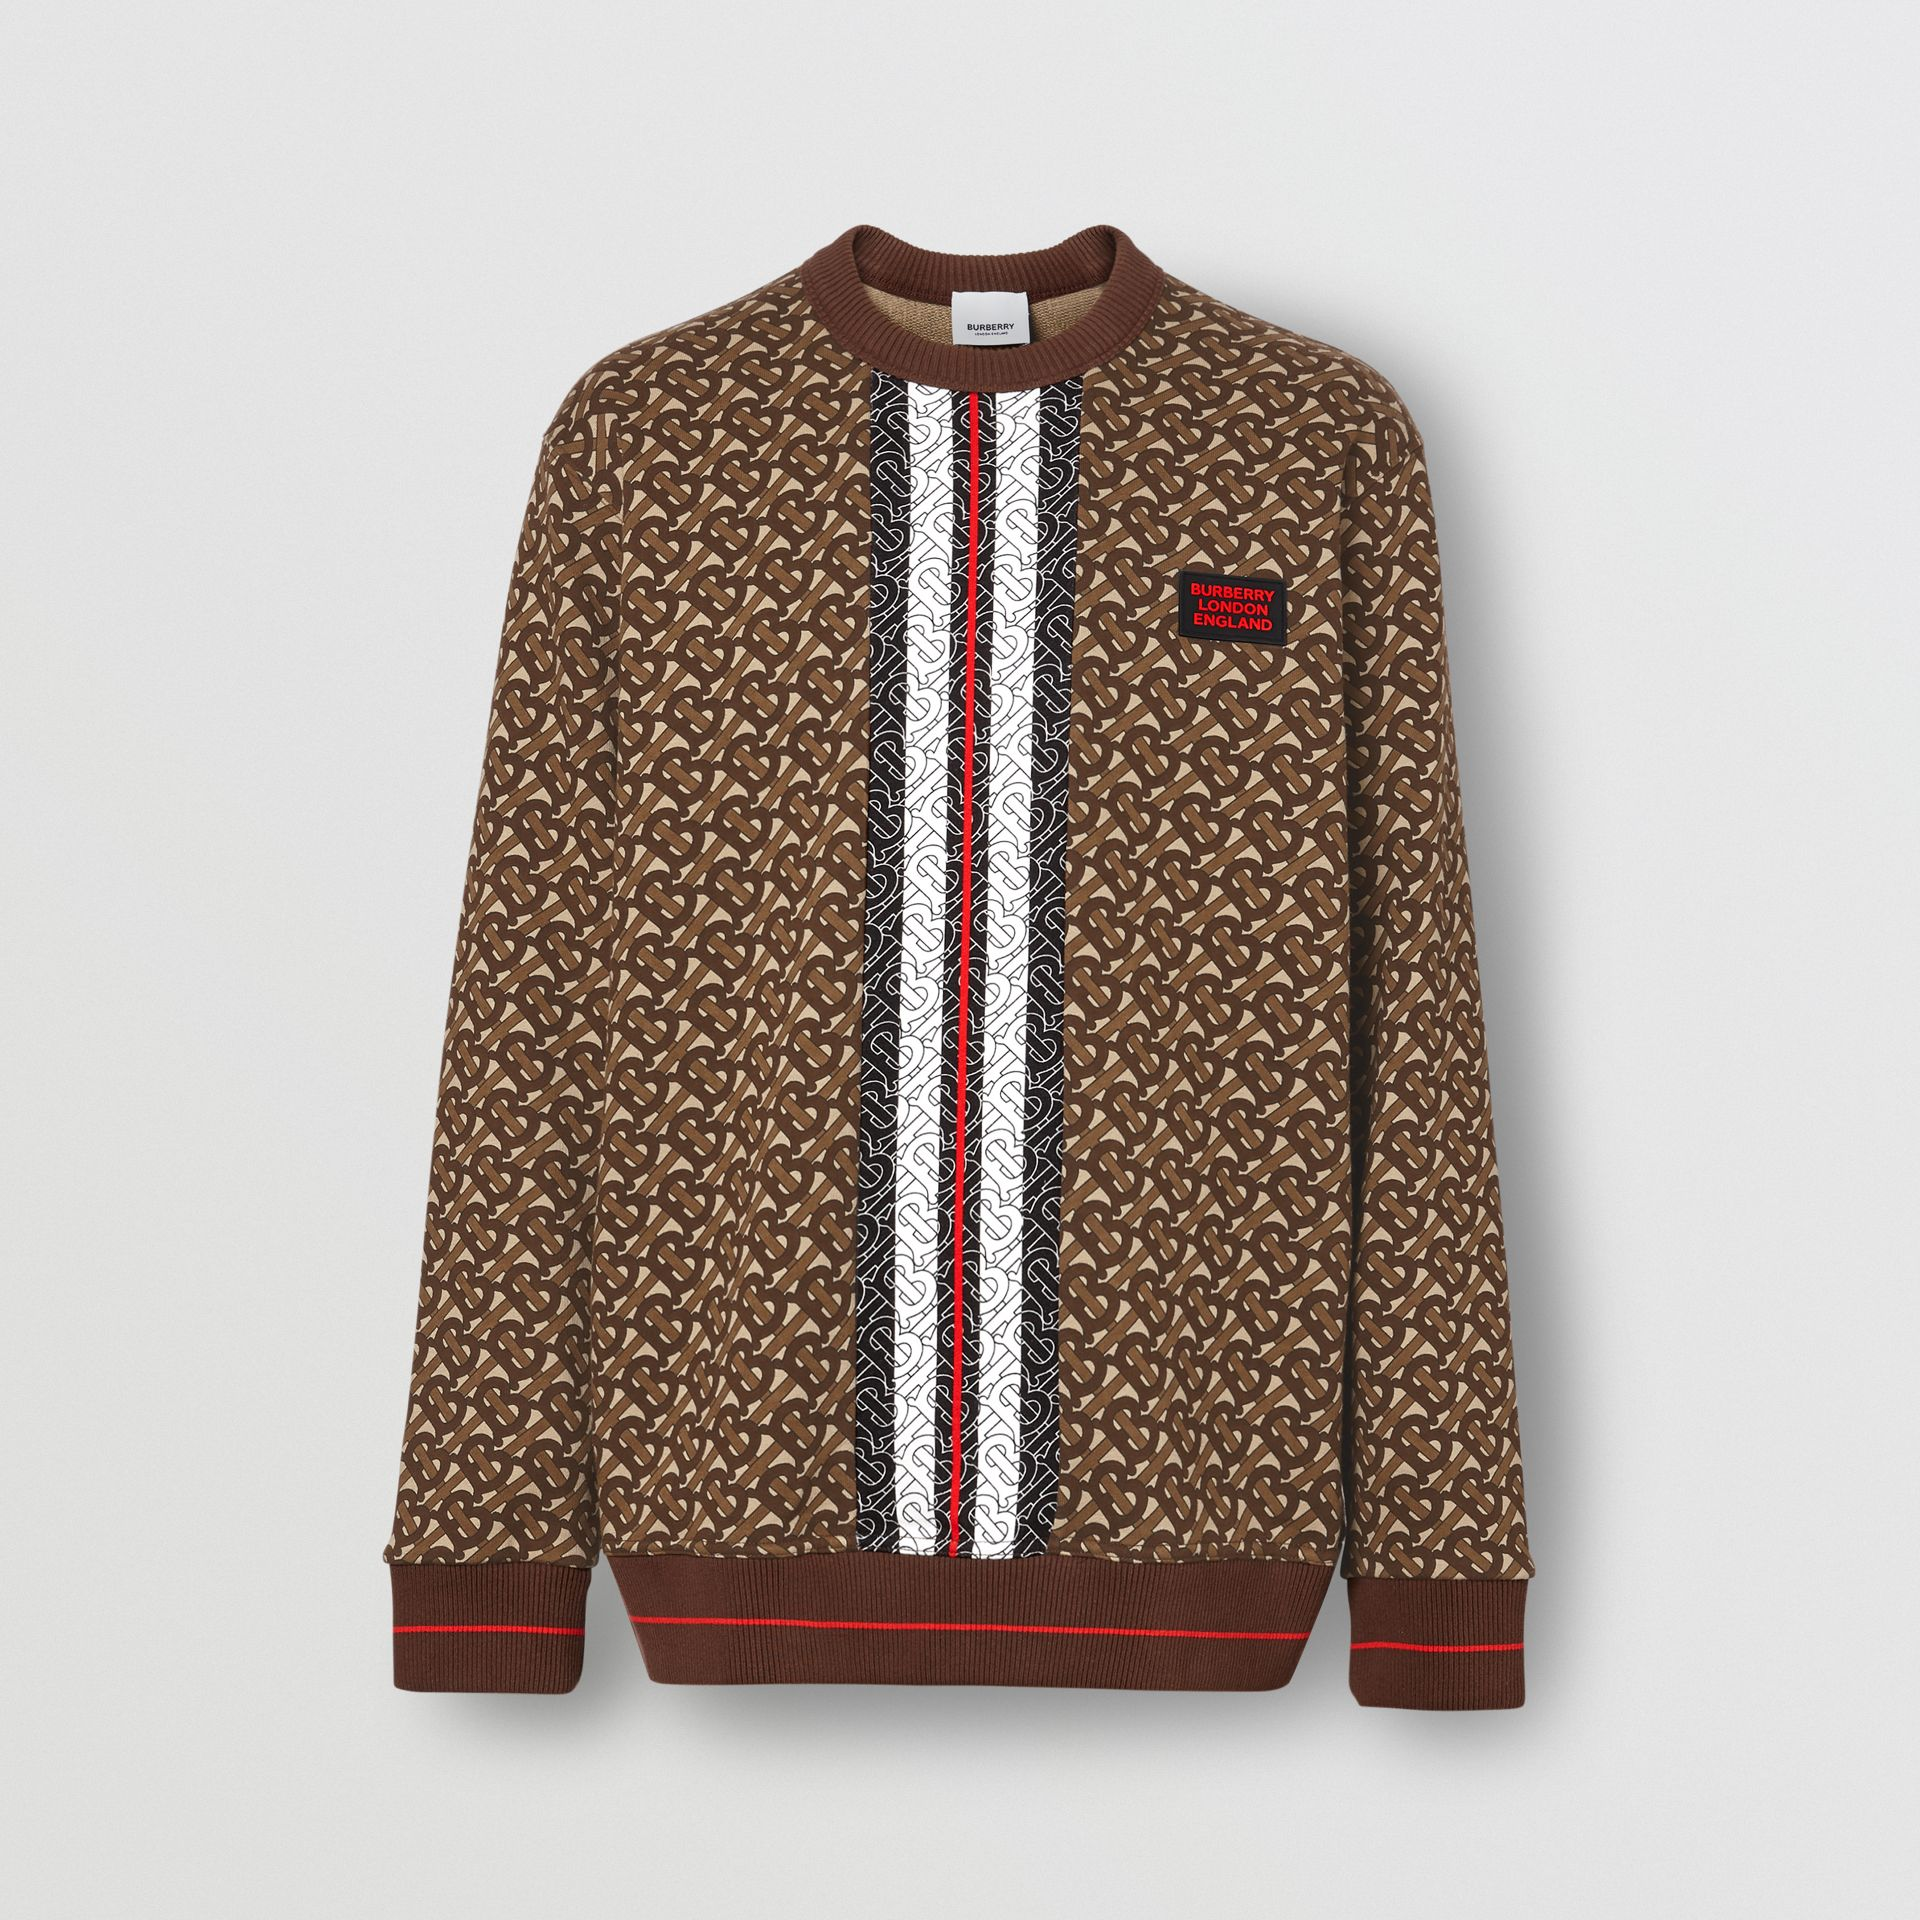 Monogram Stripe Print Cotton Sweatshirt in Bridle Brown - Men | Burberry United Kingdom - gallery image 3